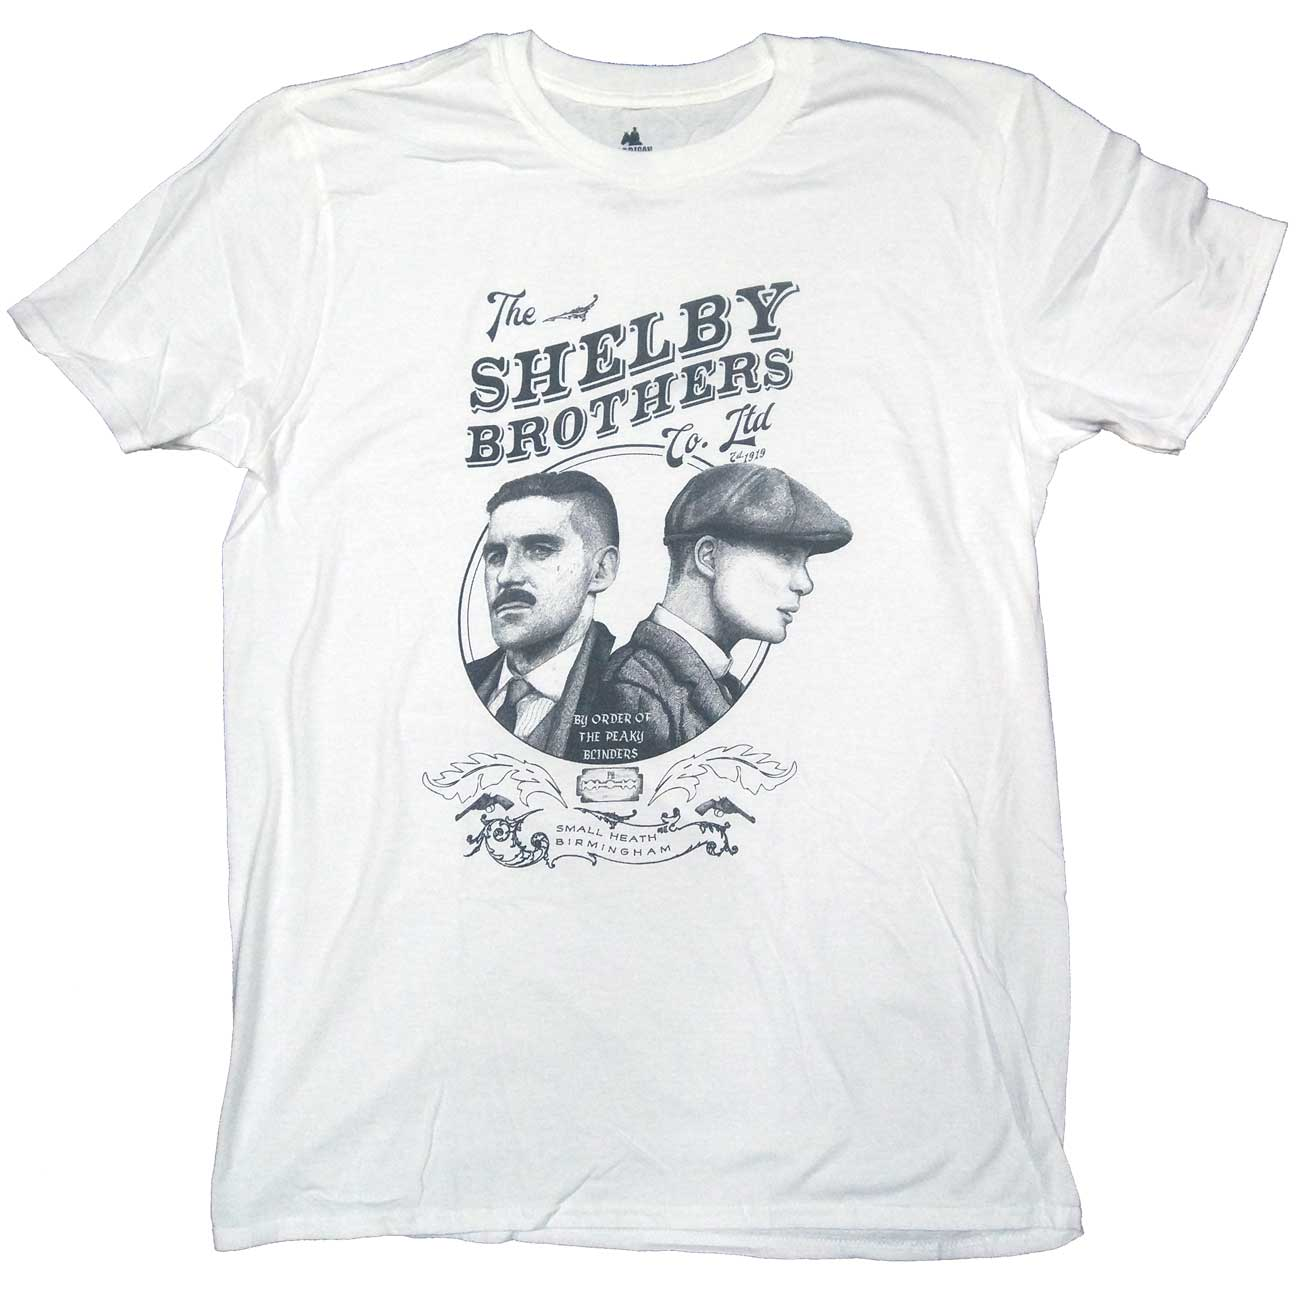 2bdb1162 Peaky Blinders T Shirt - Shelby Brothers Co. Ltd 100% Officially Licensed  Merchandise